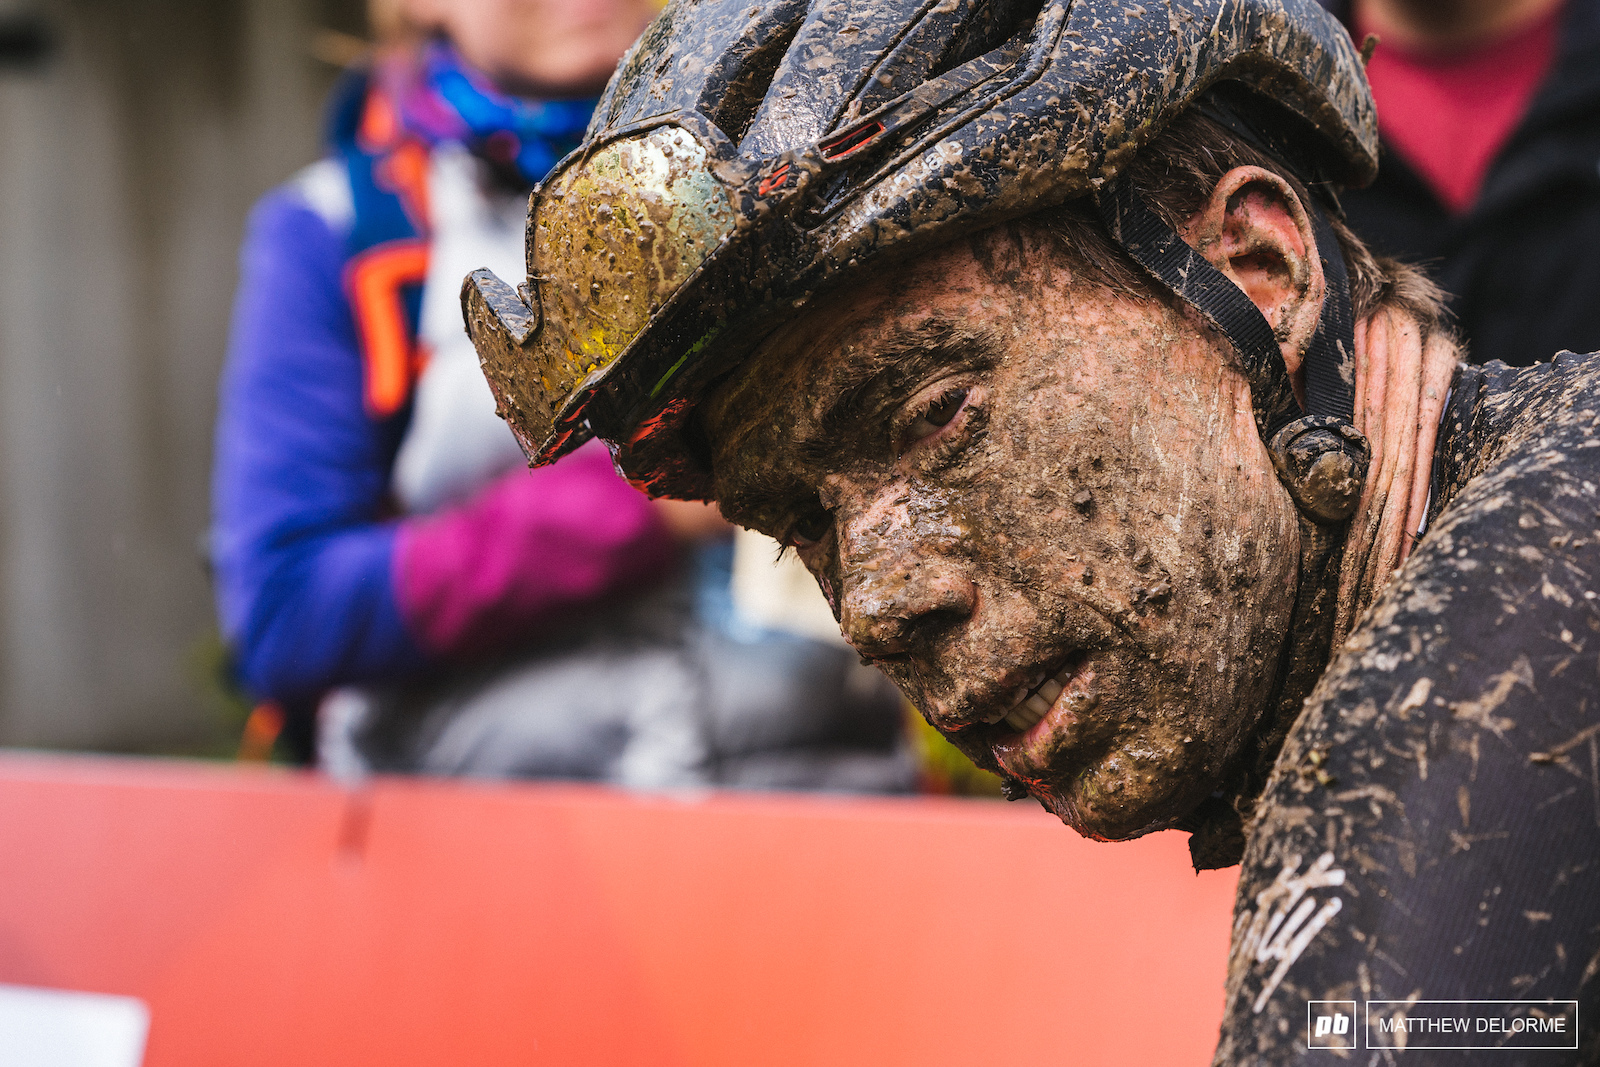 Maxime Marotte wearing all of the mud after the race.